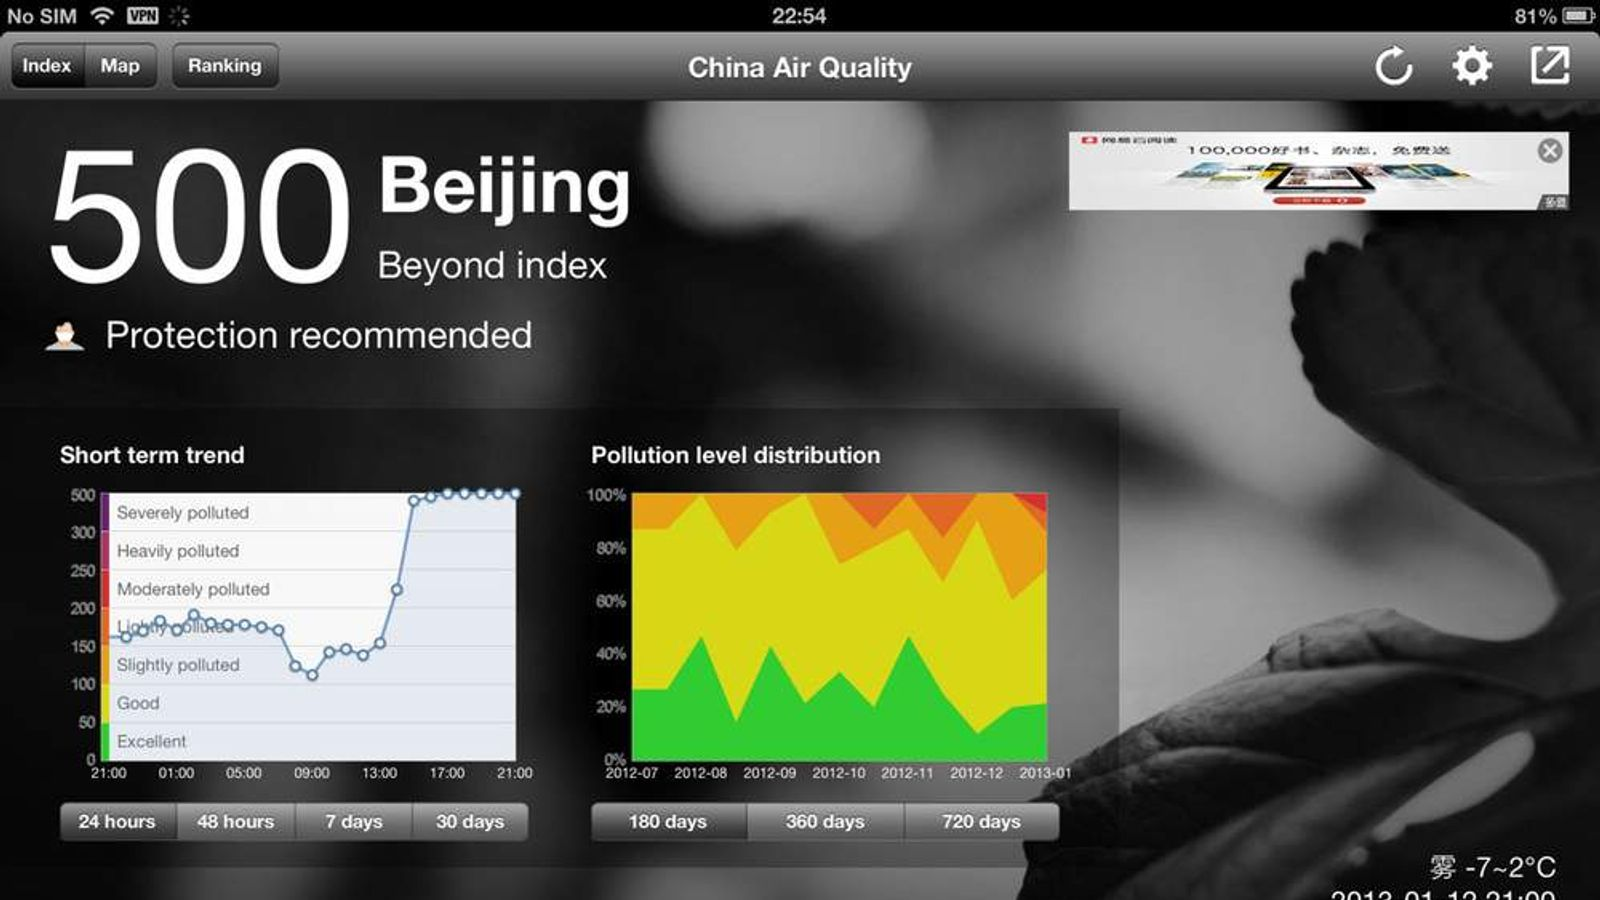 China Air Quality weather information